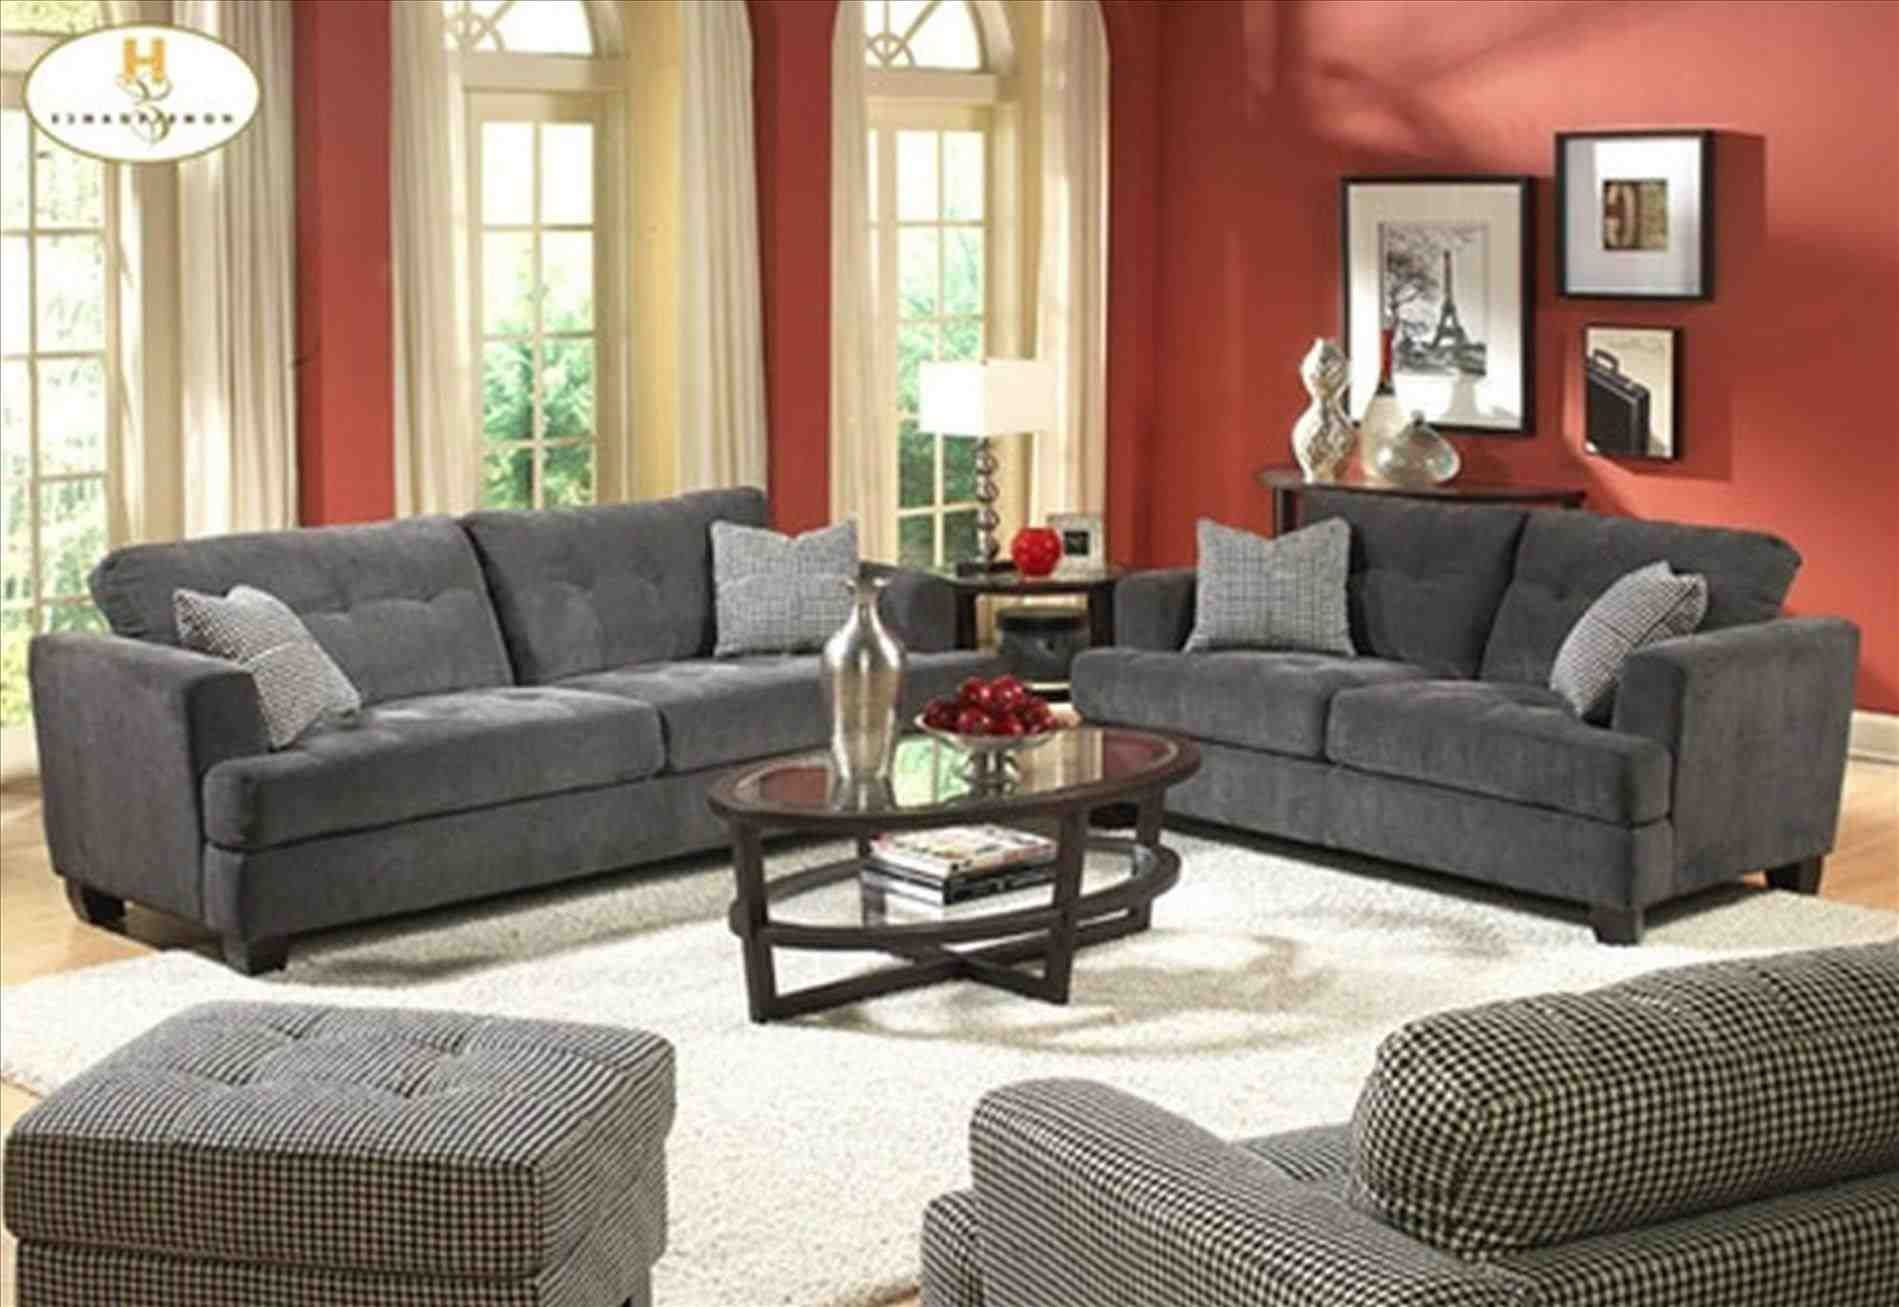 cheap furniture living room modern interior design photos canada inspirational sets contemporary